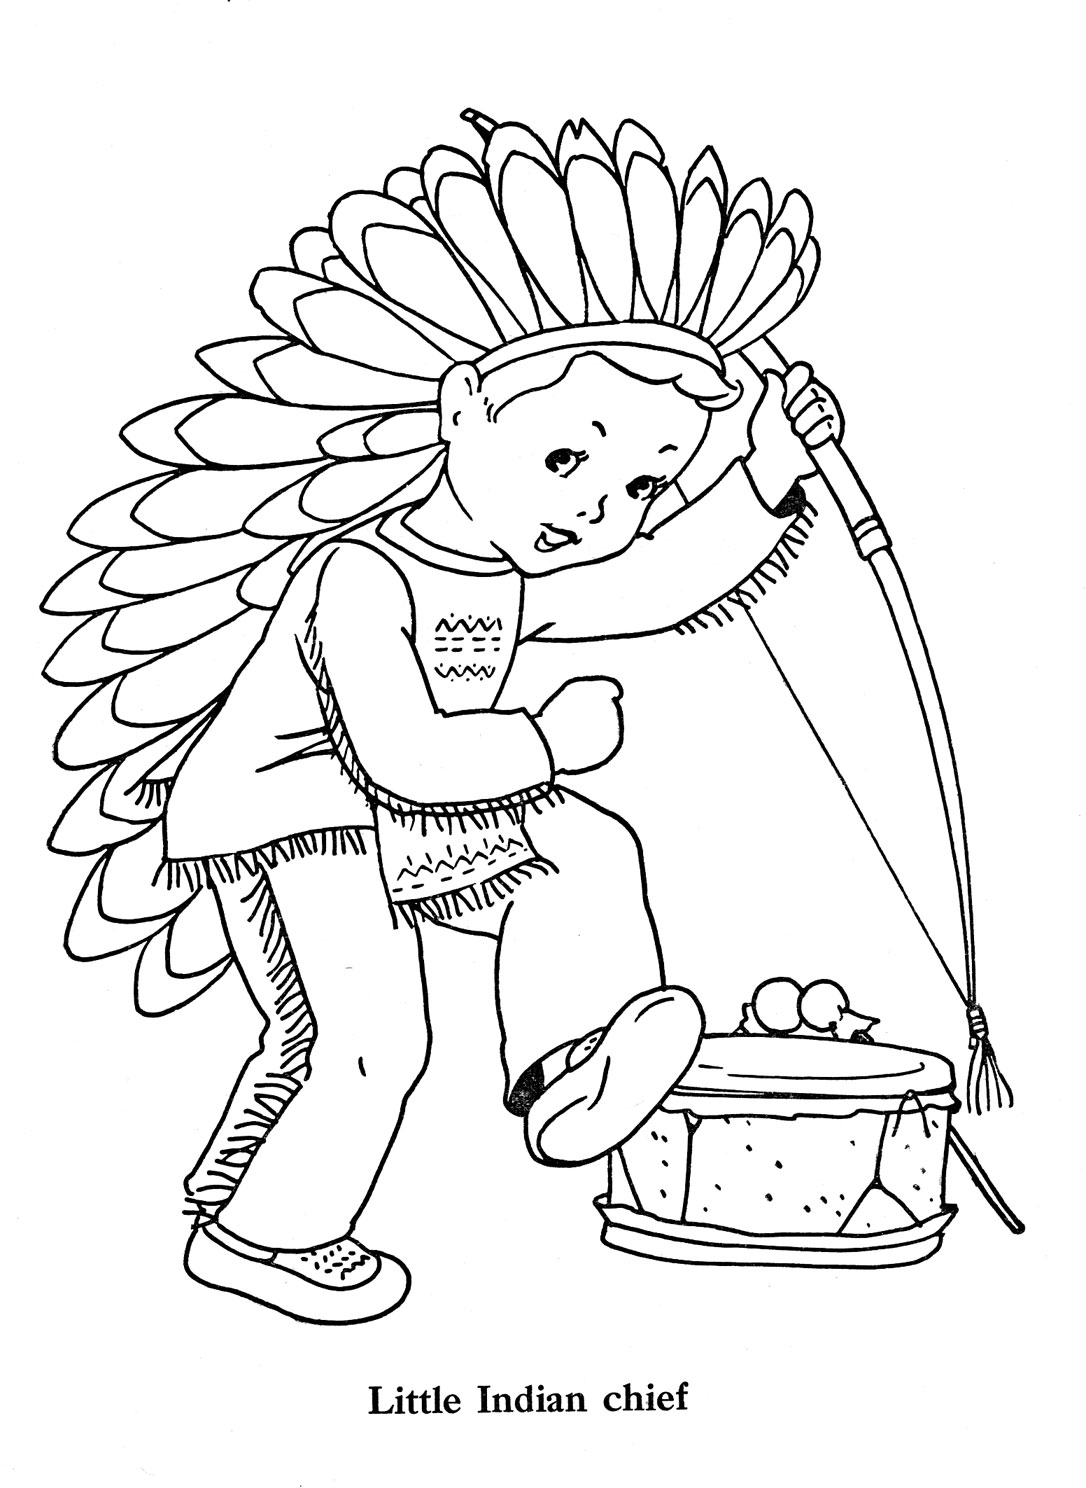 Pilgrim Indian Coloring Pages Indian Coloring Pages Best Coloring Pages For Kids